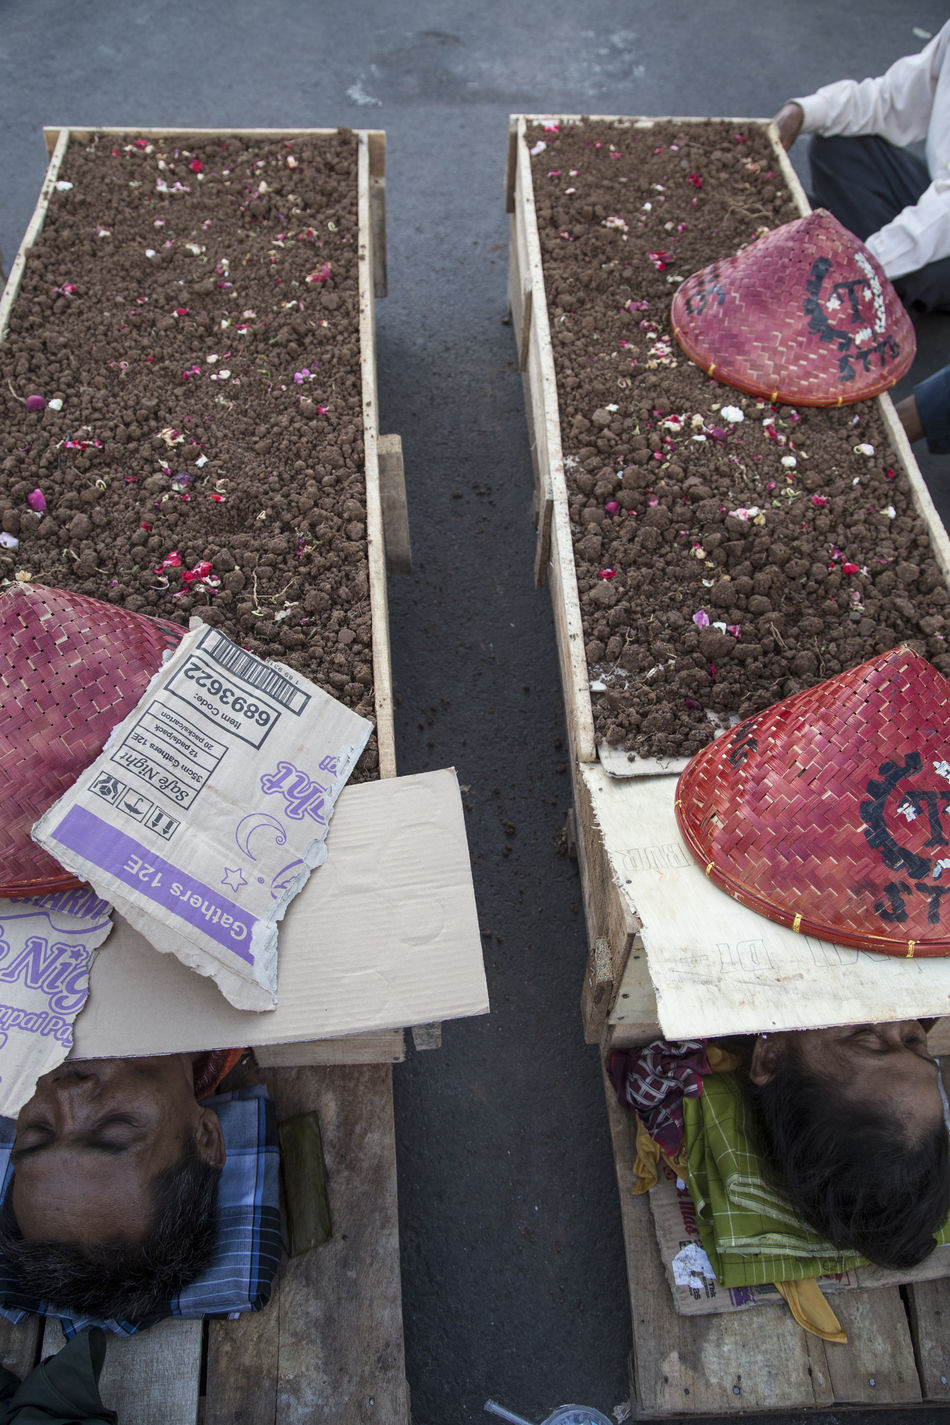 Karawang Farmers Buried their body on grave made by wood in front of Indonesia Palace and Joko Widodo did not care!! Their Land wipe out by LandLord and they Asked Jokowi promises for Agraria Reform but it just fake campaign during Election. Fuccccckkkkkk!! #indonesia #farmers #landlord Alive  Buried Farmer Farmers Grave INDONESIA Jokowidodo Lanlord